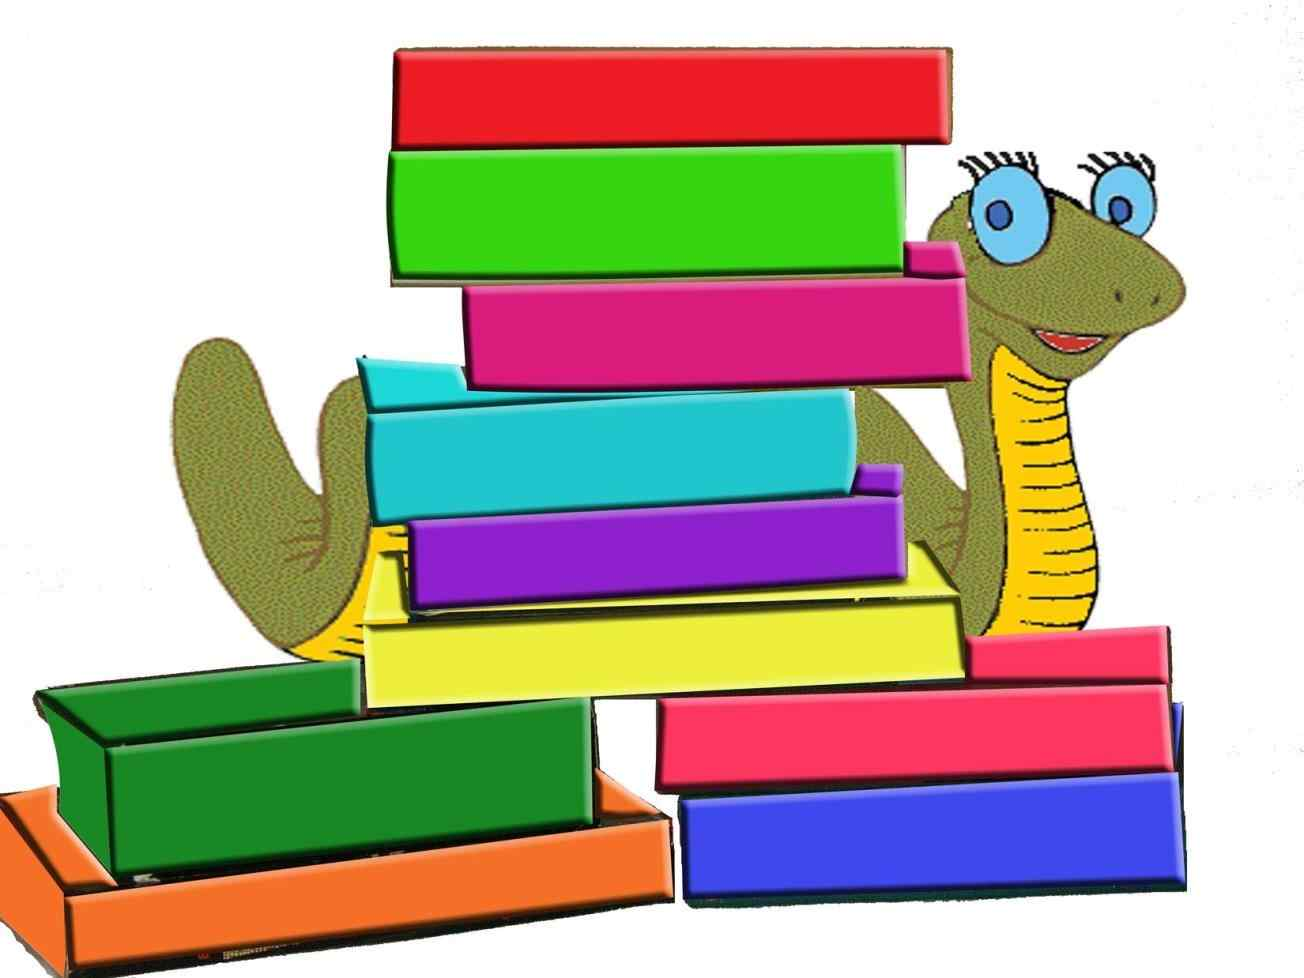 1304x978 Bookshelves With Books Clipart